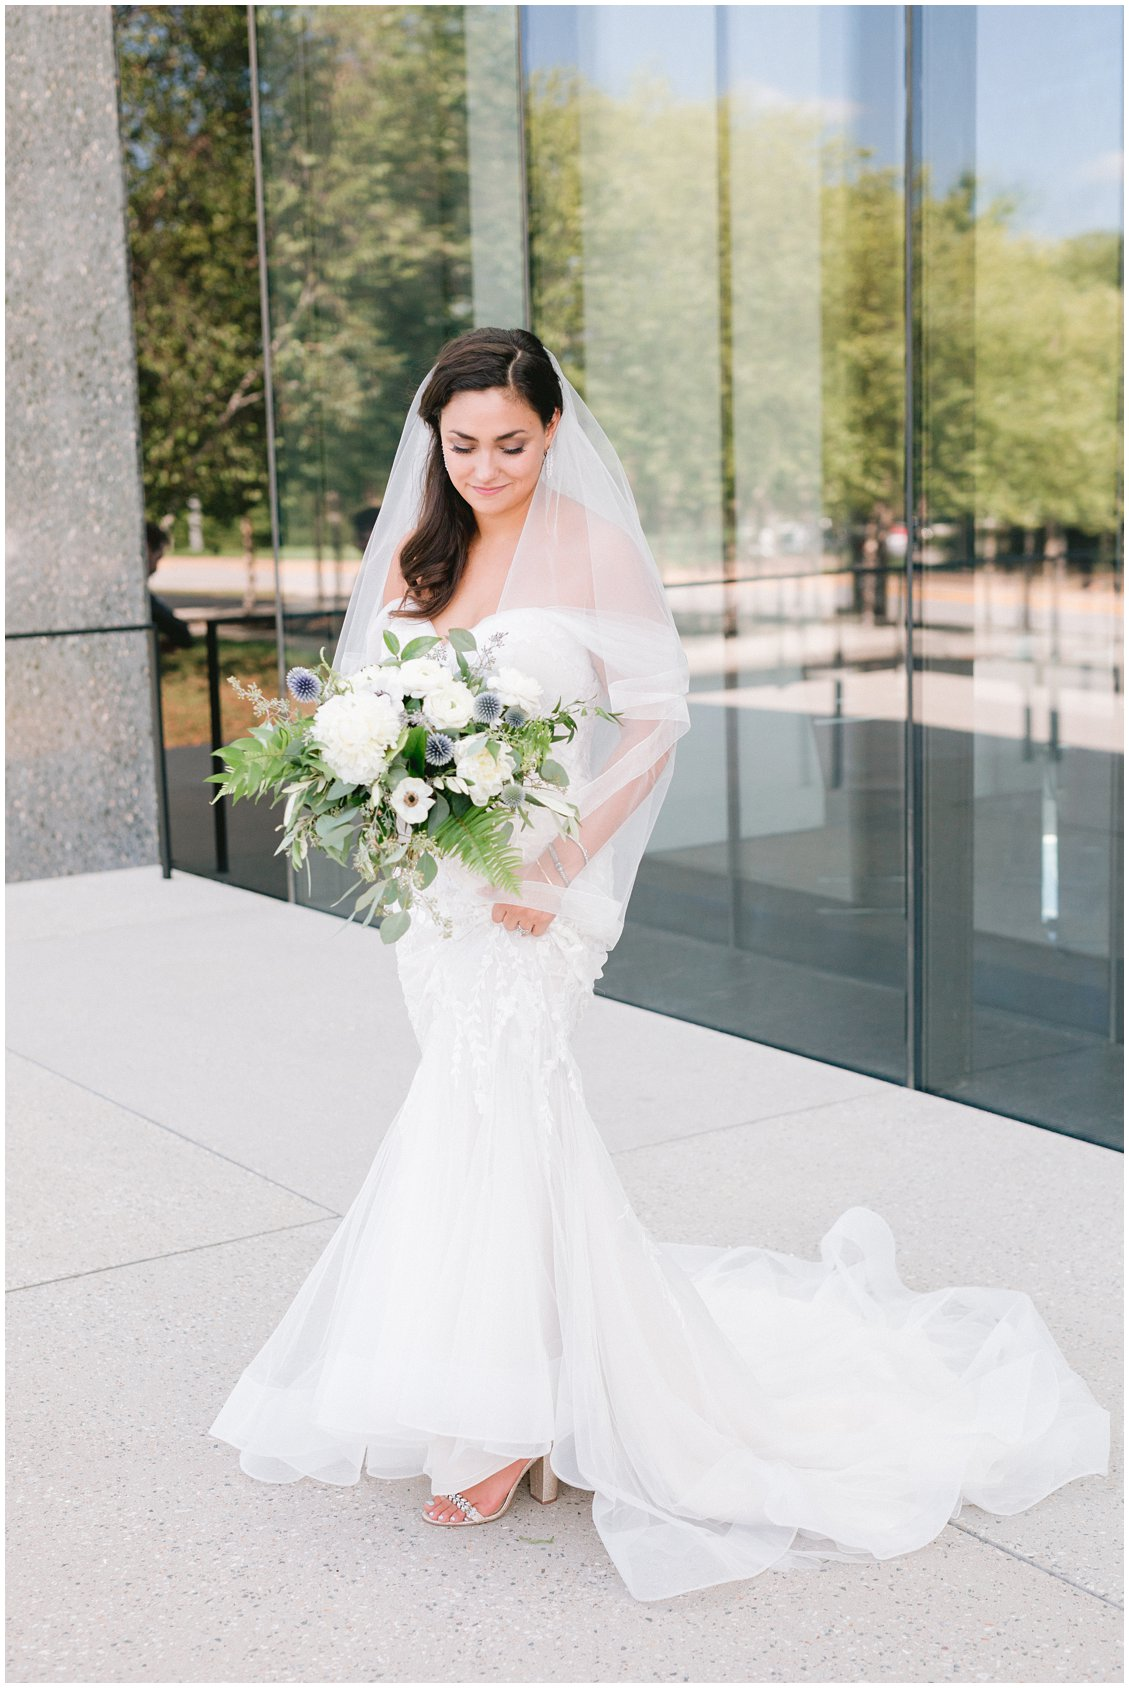 An elegant summertime wedding at The Boocat Club and Graham Chapel on WashU Campus in St Louis Missouri by Pattengale Photography